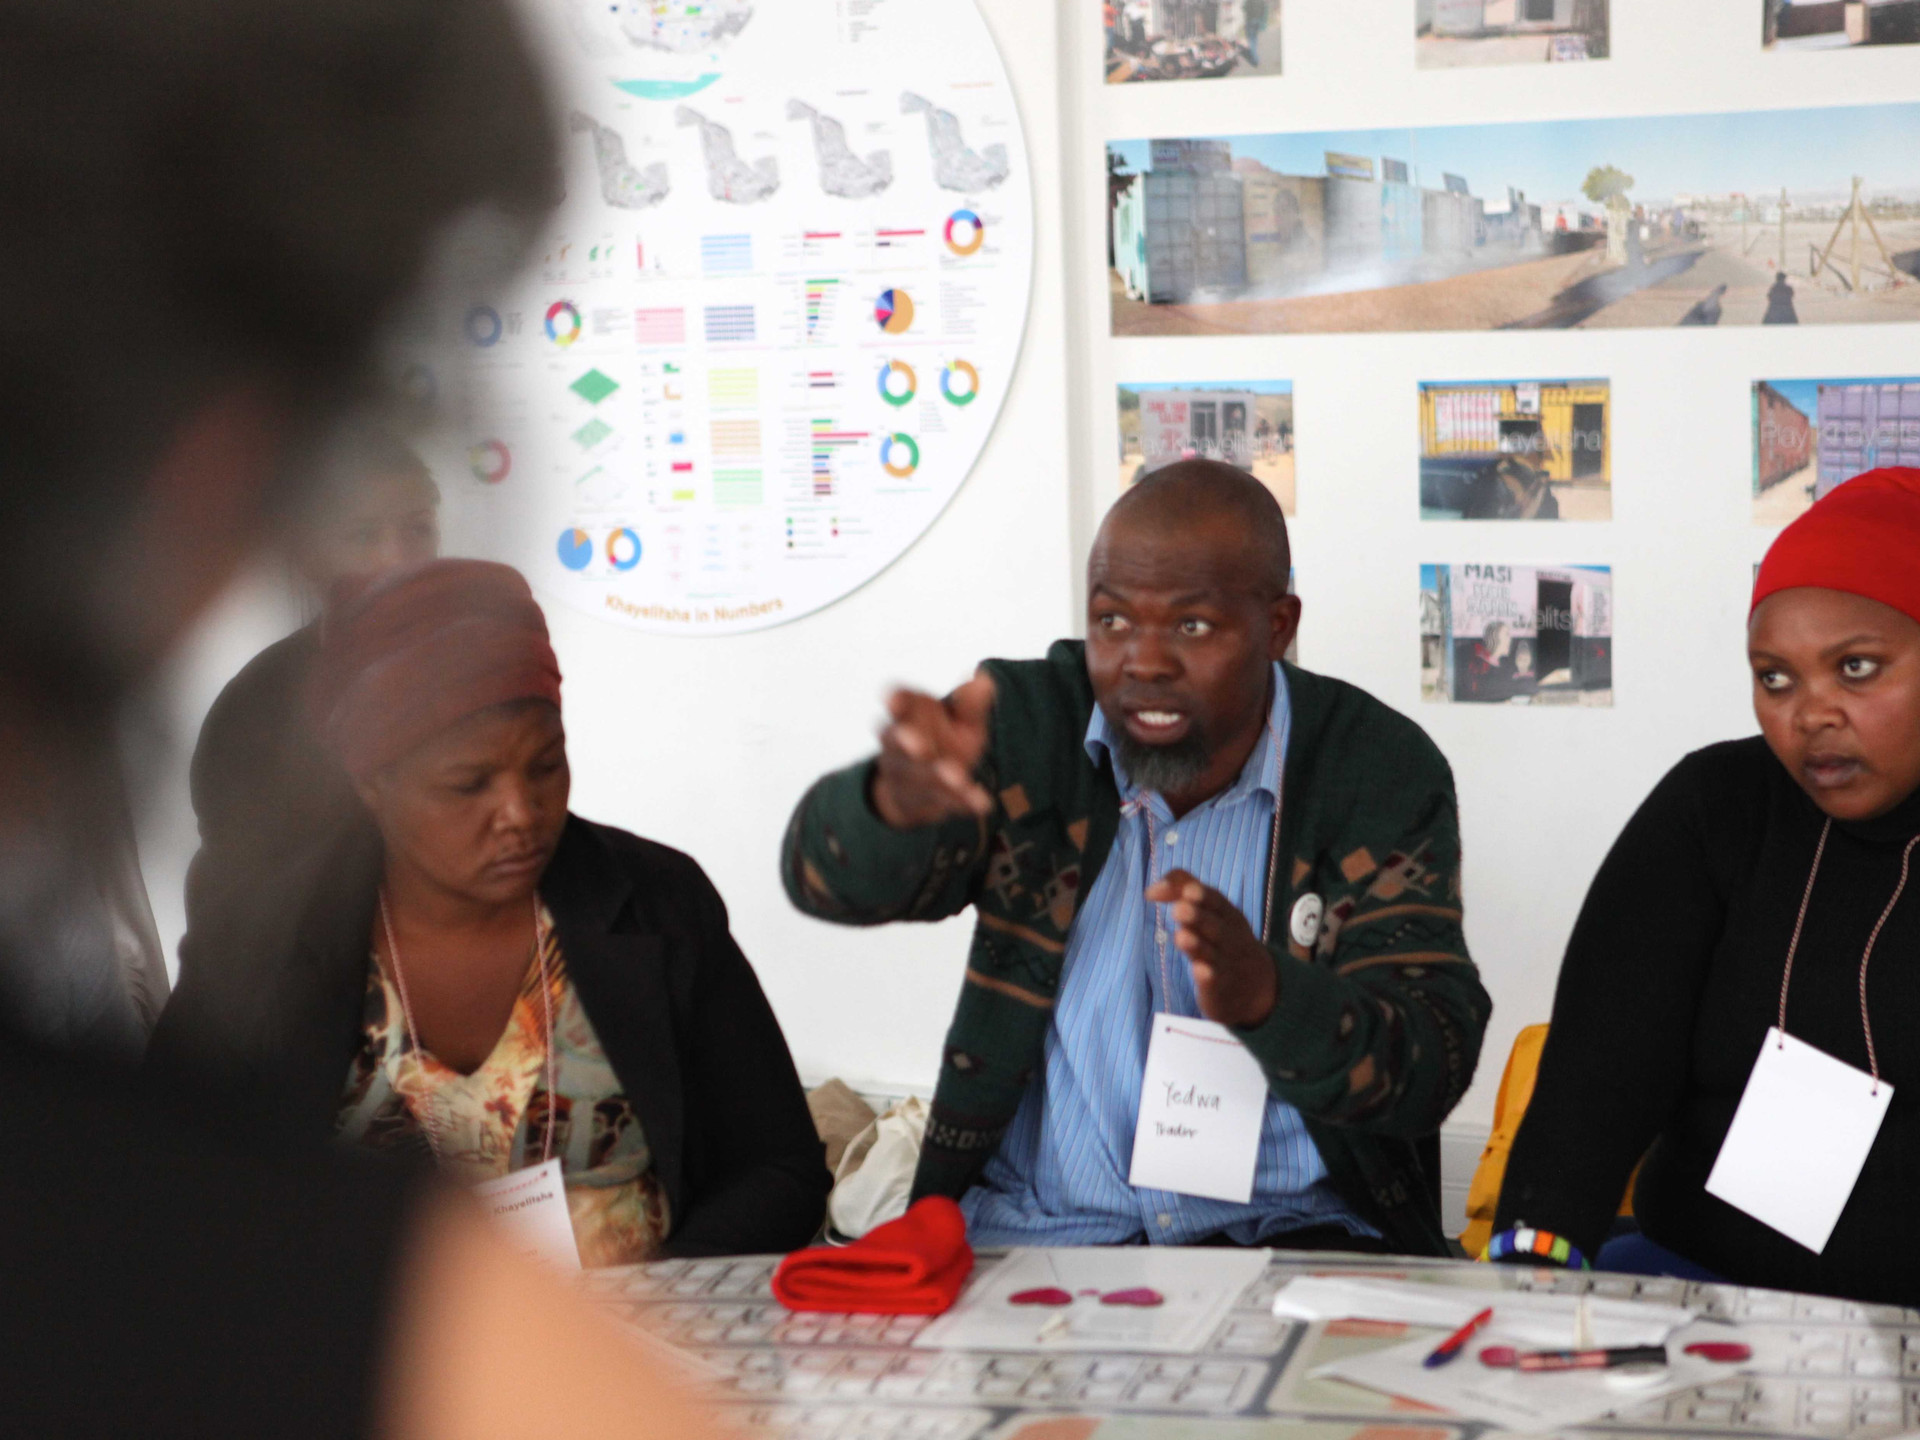 Trader Yedwa is explaining his vision for the Khayelitsha Centre Business District. -rents for formalised shops needs to be negotiated openly with the city; a standardisation for Cape Flats is desirable.